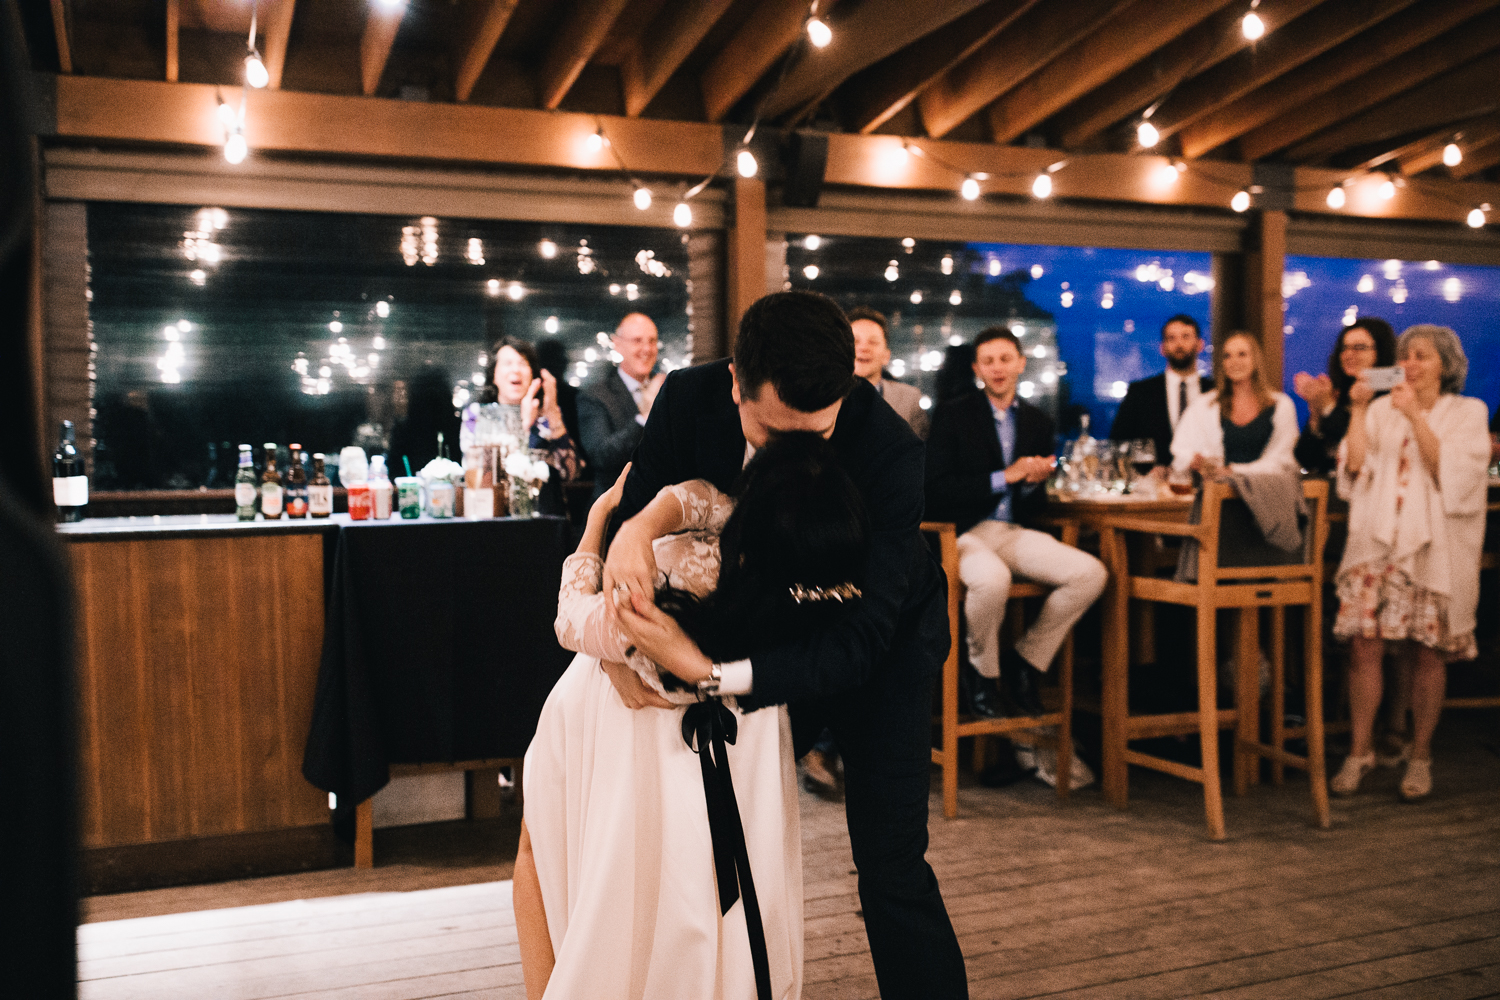 2019_05_ 182019.05.19 Lisa + Eddie South Bay Wedding Blog Photos Edited For Web 0148.jpg